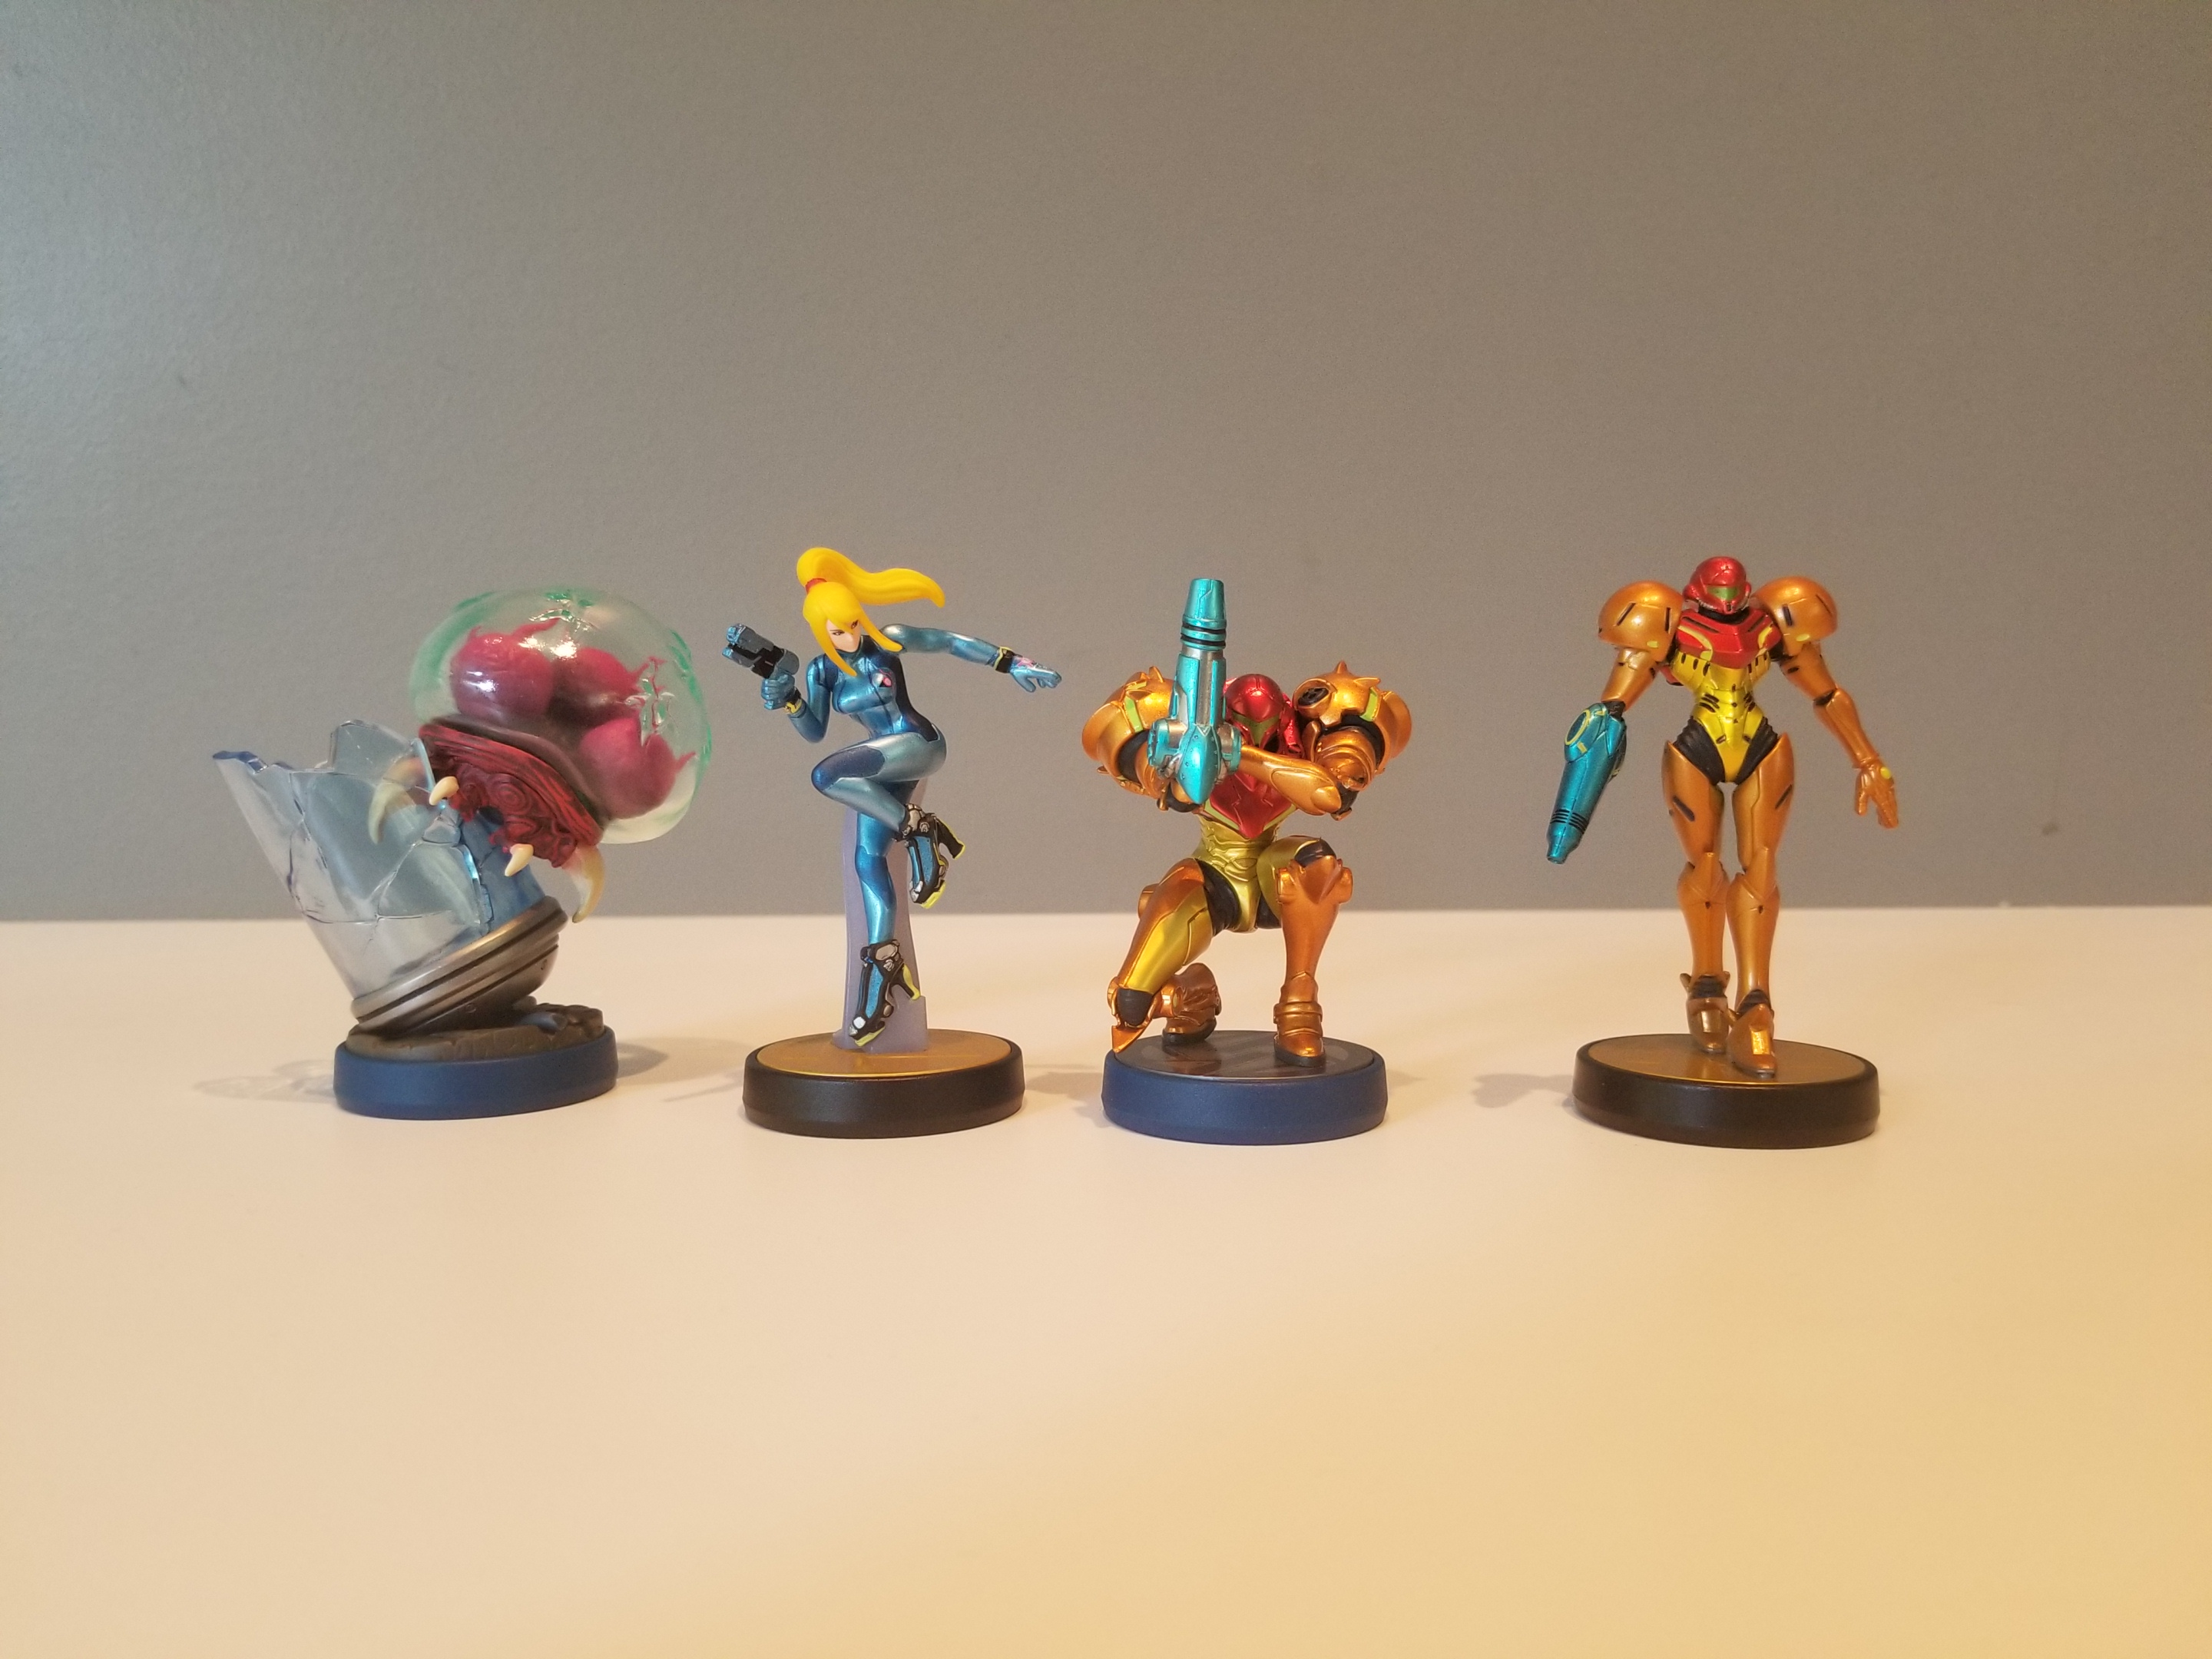 IGN takes a close look at Metroid: Samus Returns' amiibo functionality